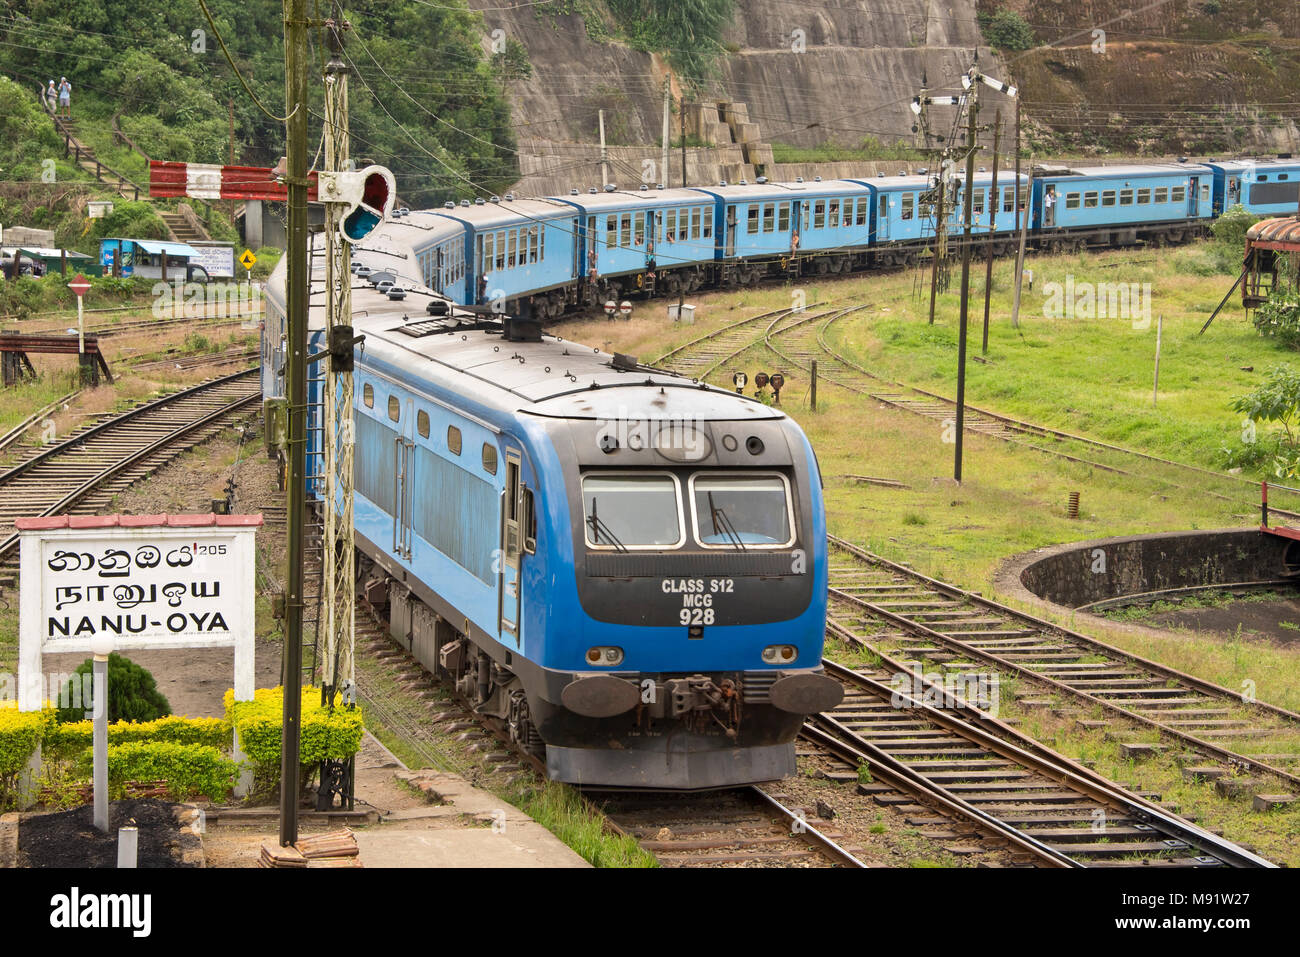 A class S12 MCG 928 diesel multiple-unit (DMU) train pulling in to Nanu Oya railway station, Sri Lanka. - Stock Image